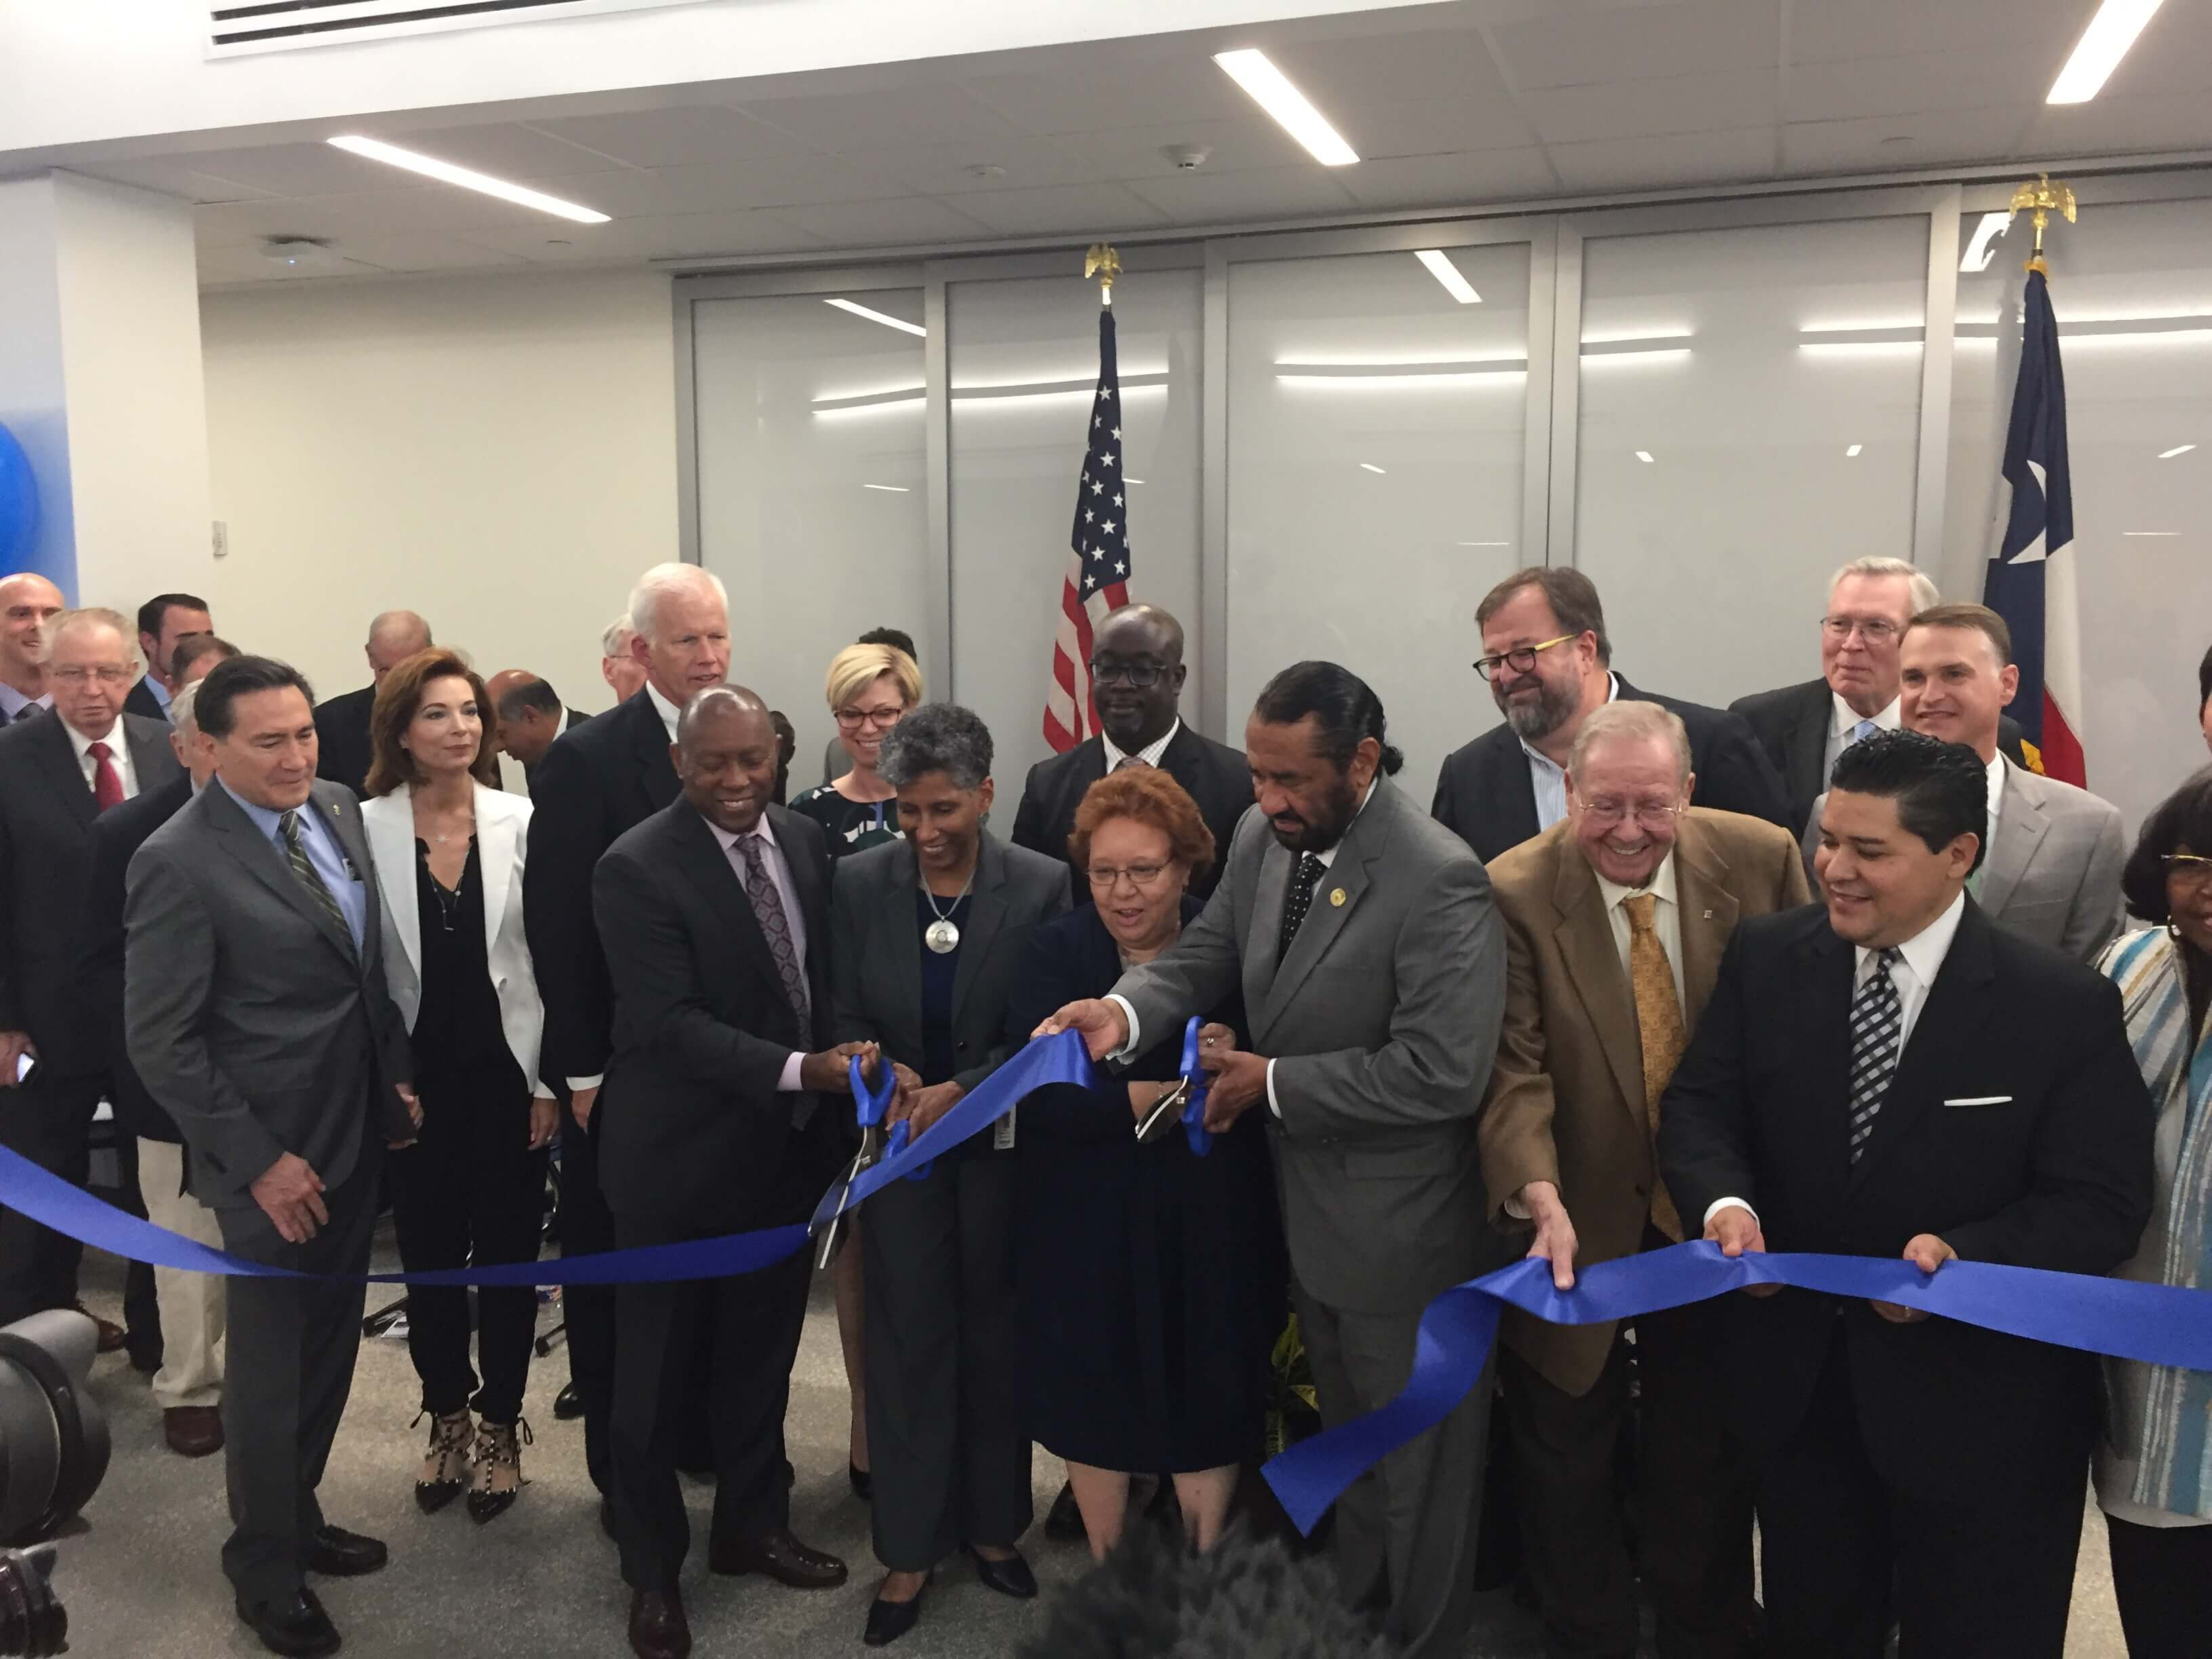 Mayor Sylvester Turner and Congressman Al Green join Principal Perry and Texas Medical Center leaders cutting the ribbon on the new building.